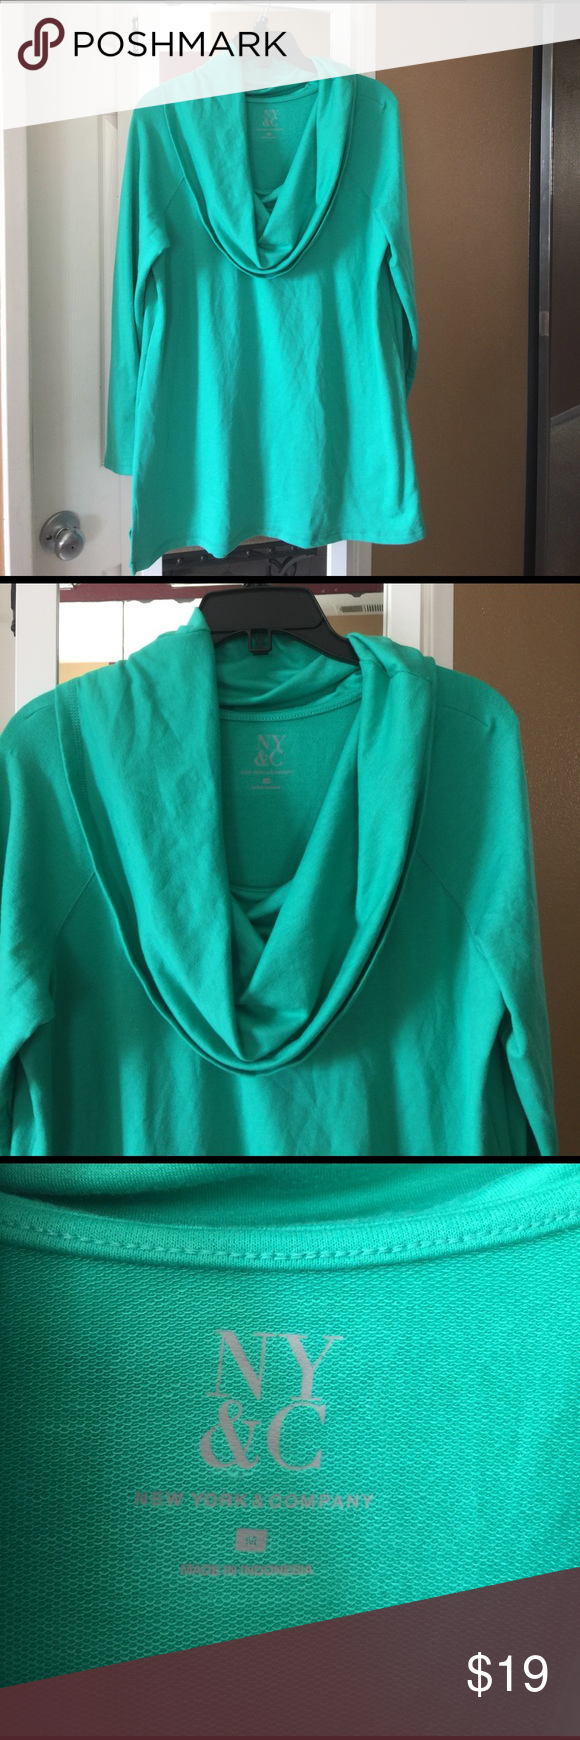 Green sweater New York & company light Green cowl neck sweater. Size marked medium but it's over size, more like XL or size 12. Material is soft and stretchy. Never been worn but no tag. New York & Company Sweaters Cowl & Turtlenecks